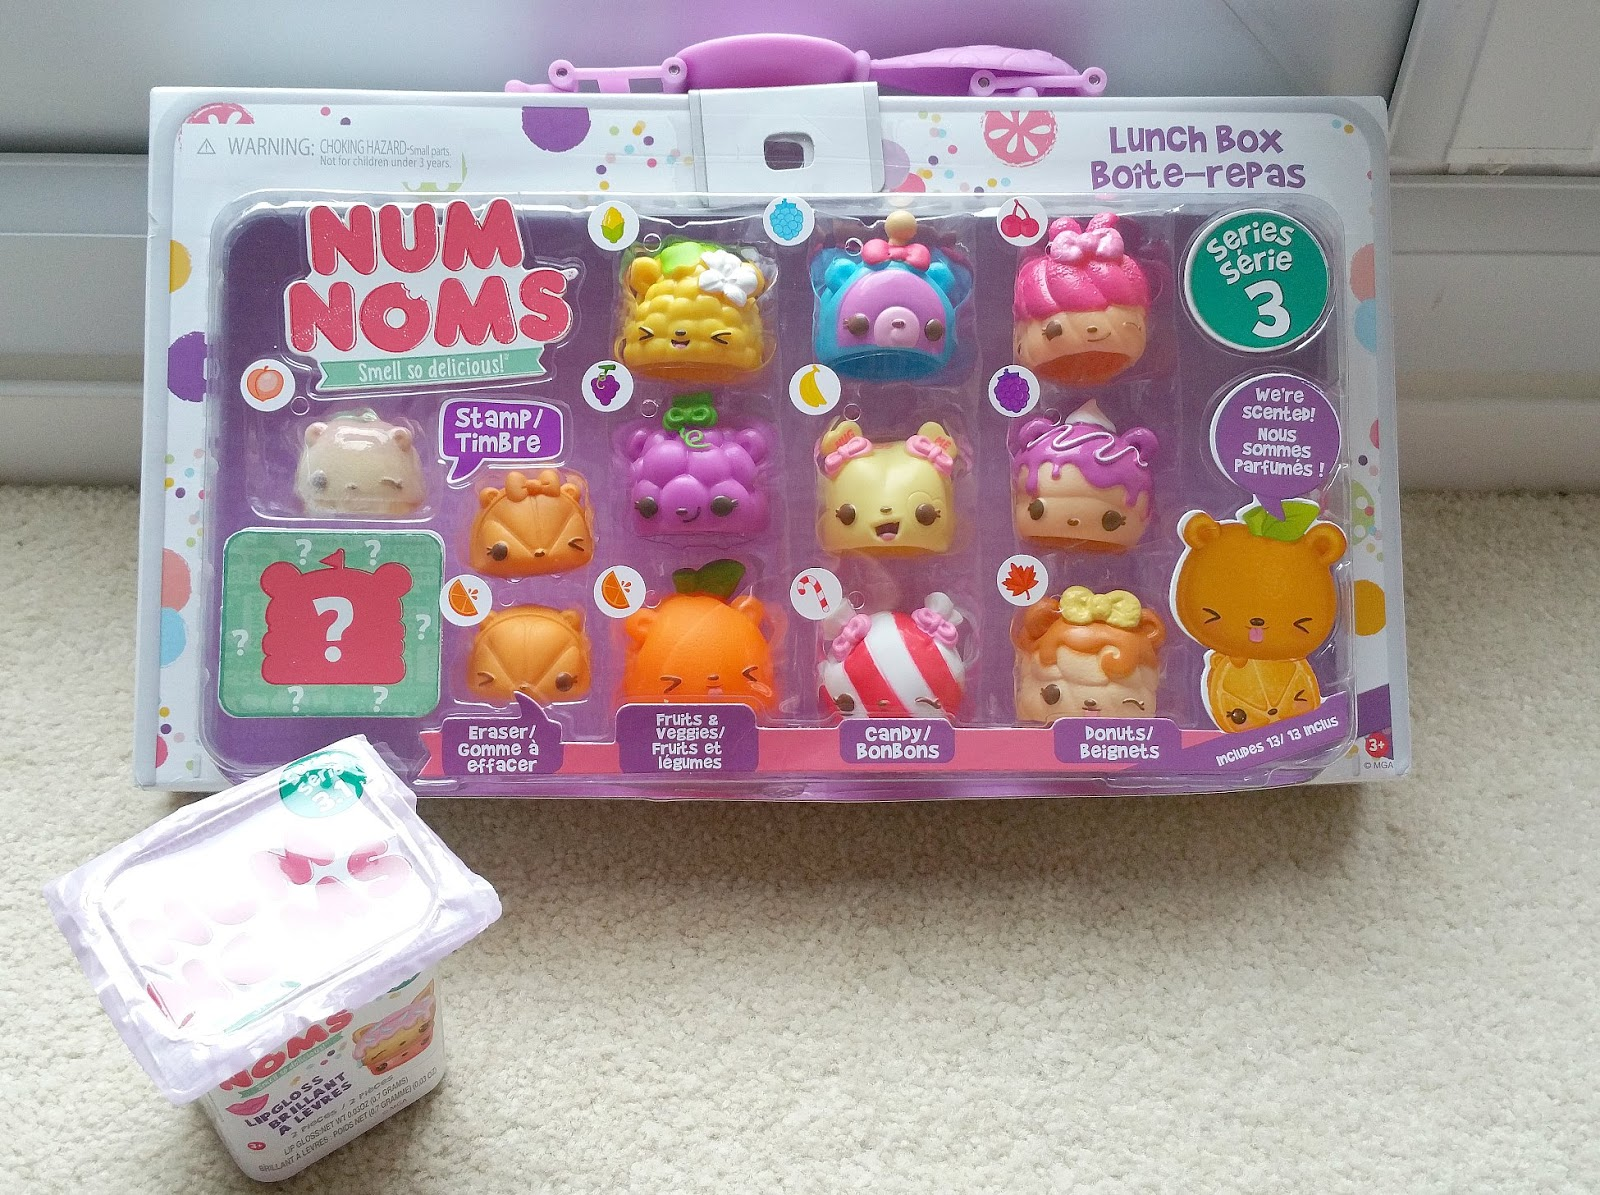 Num Noms Series 3, Pancake Day ideas, Japanese Crepe